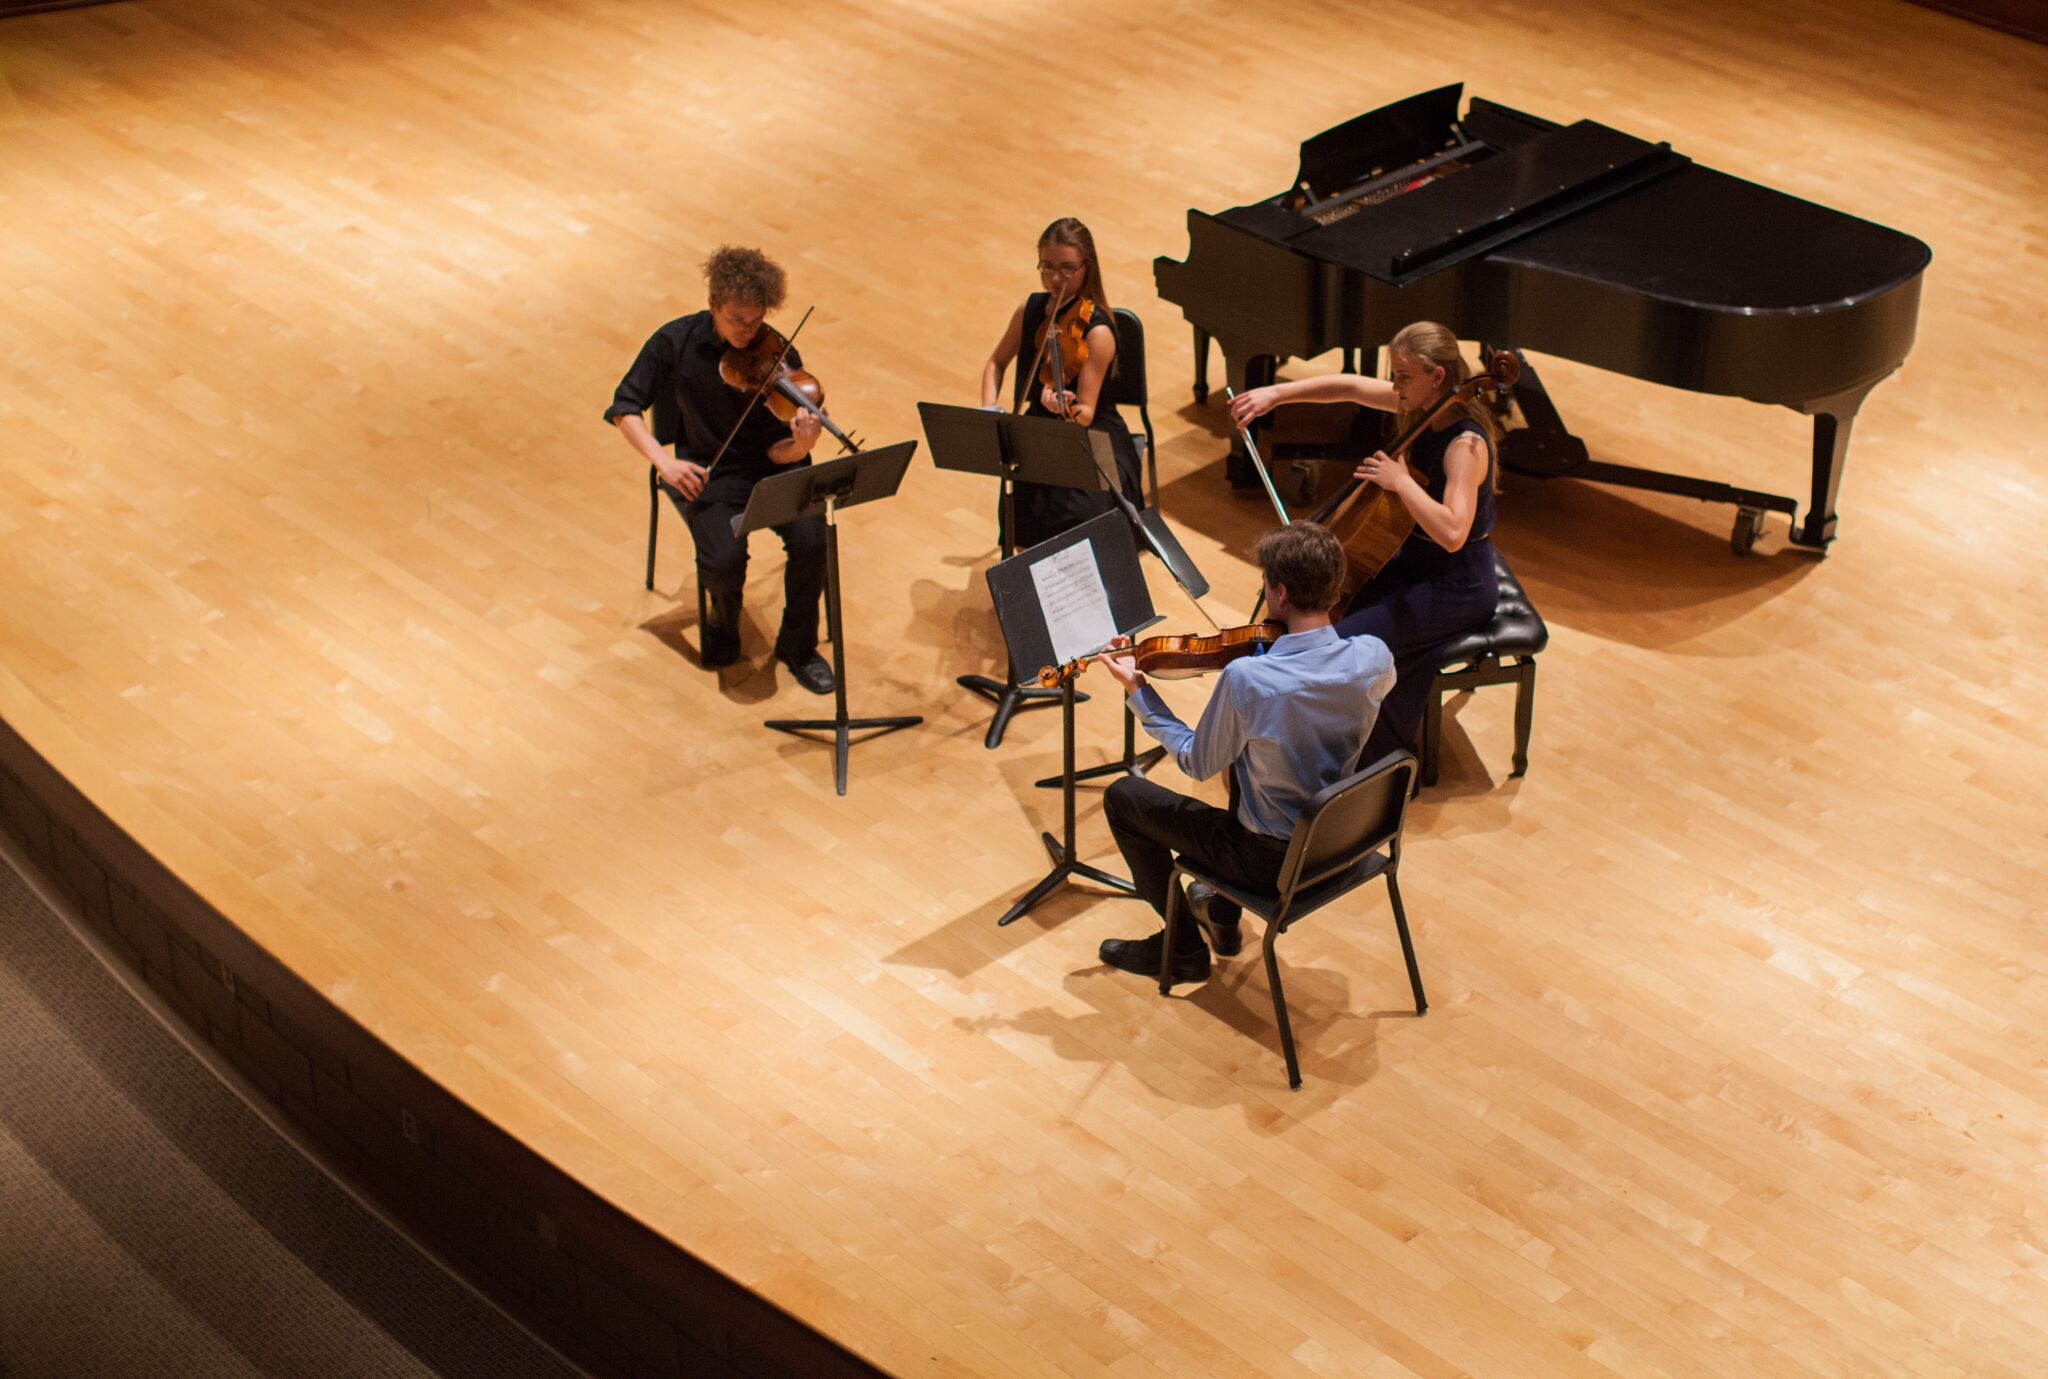 Performances - Over the course of 3 weeks, students will have weekly solo and chamber group performance opportunities through weekly faculty studio classes, masterclasses, as well as 3 student concerts on and off campus.